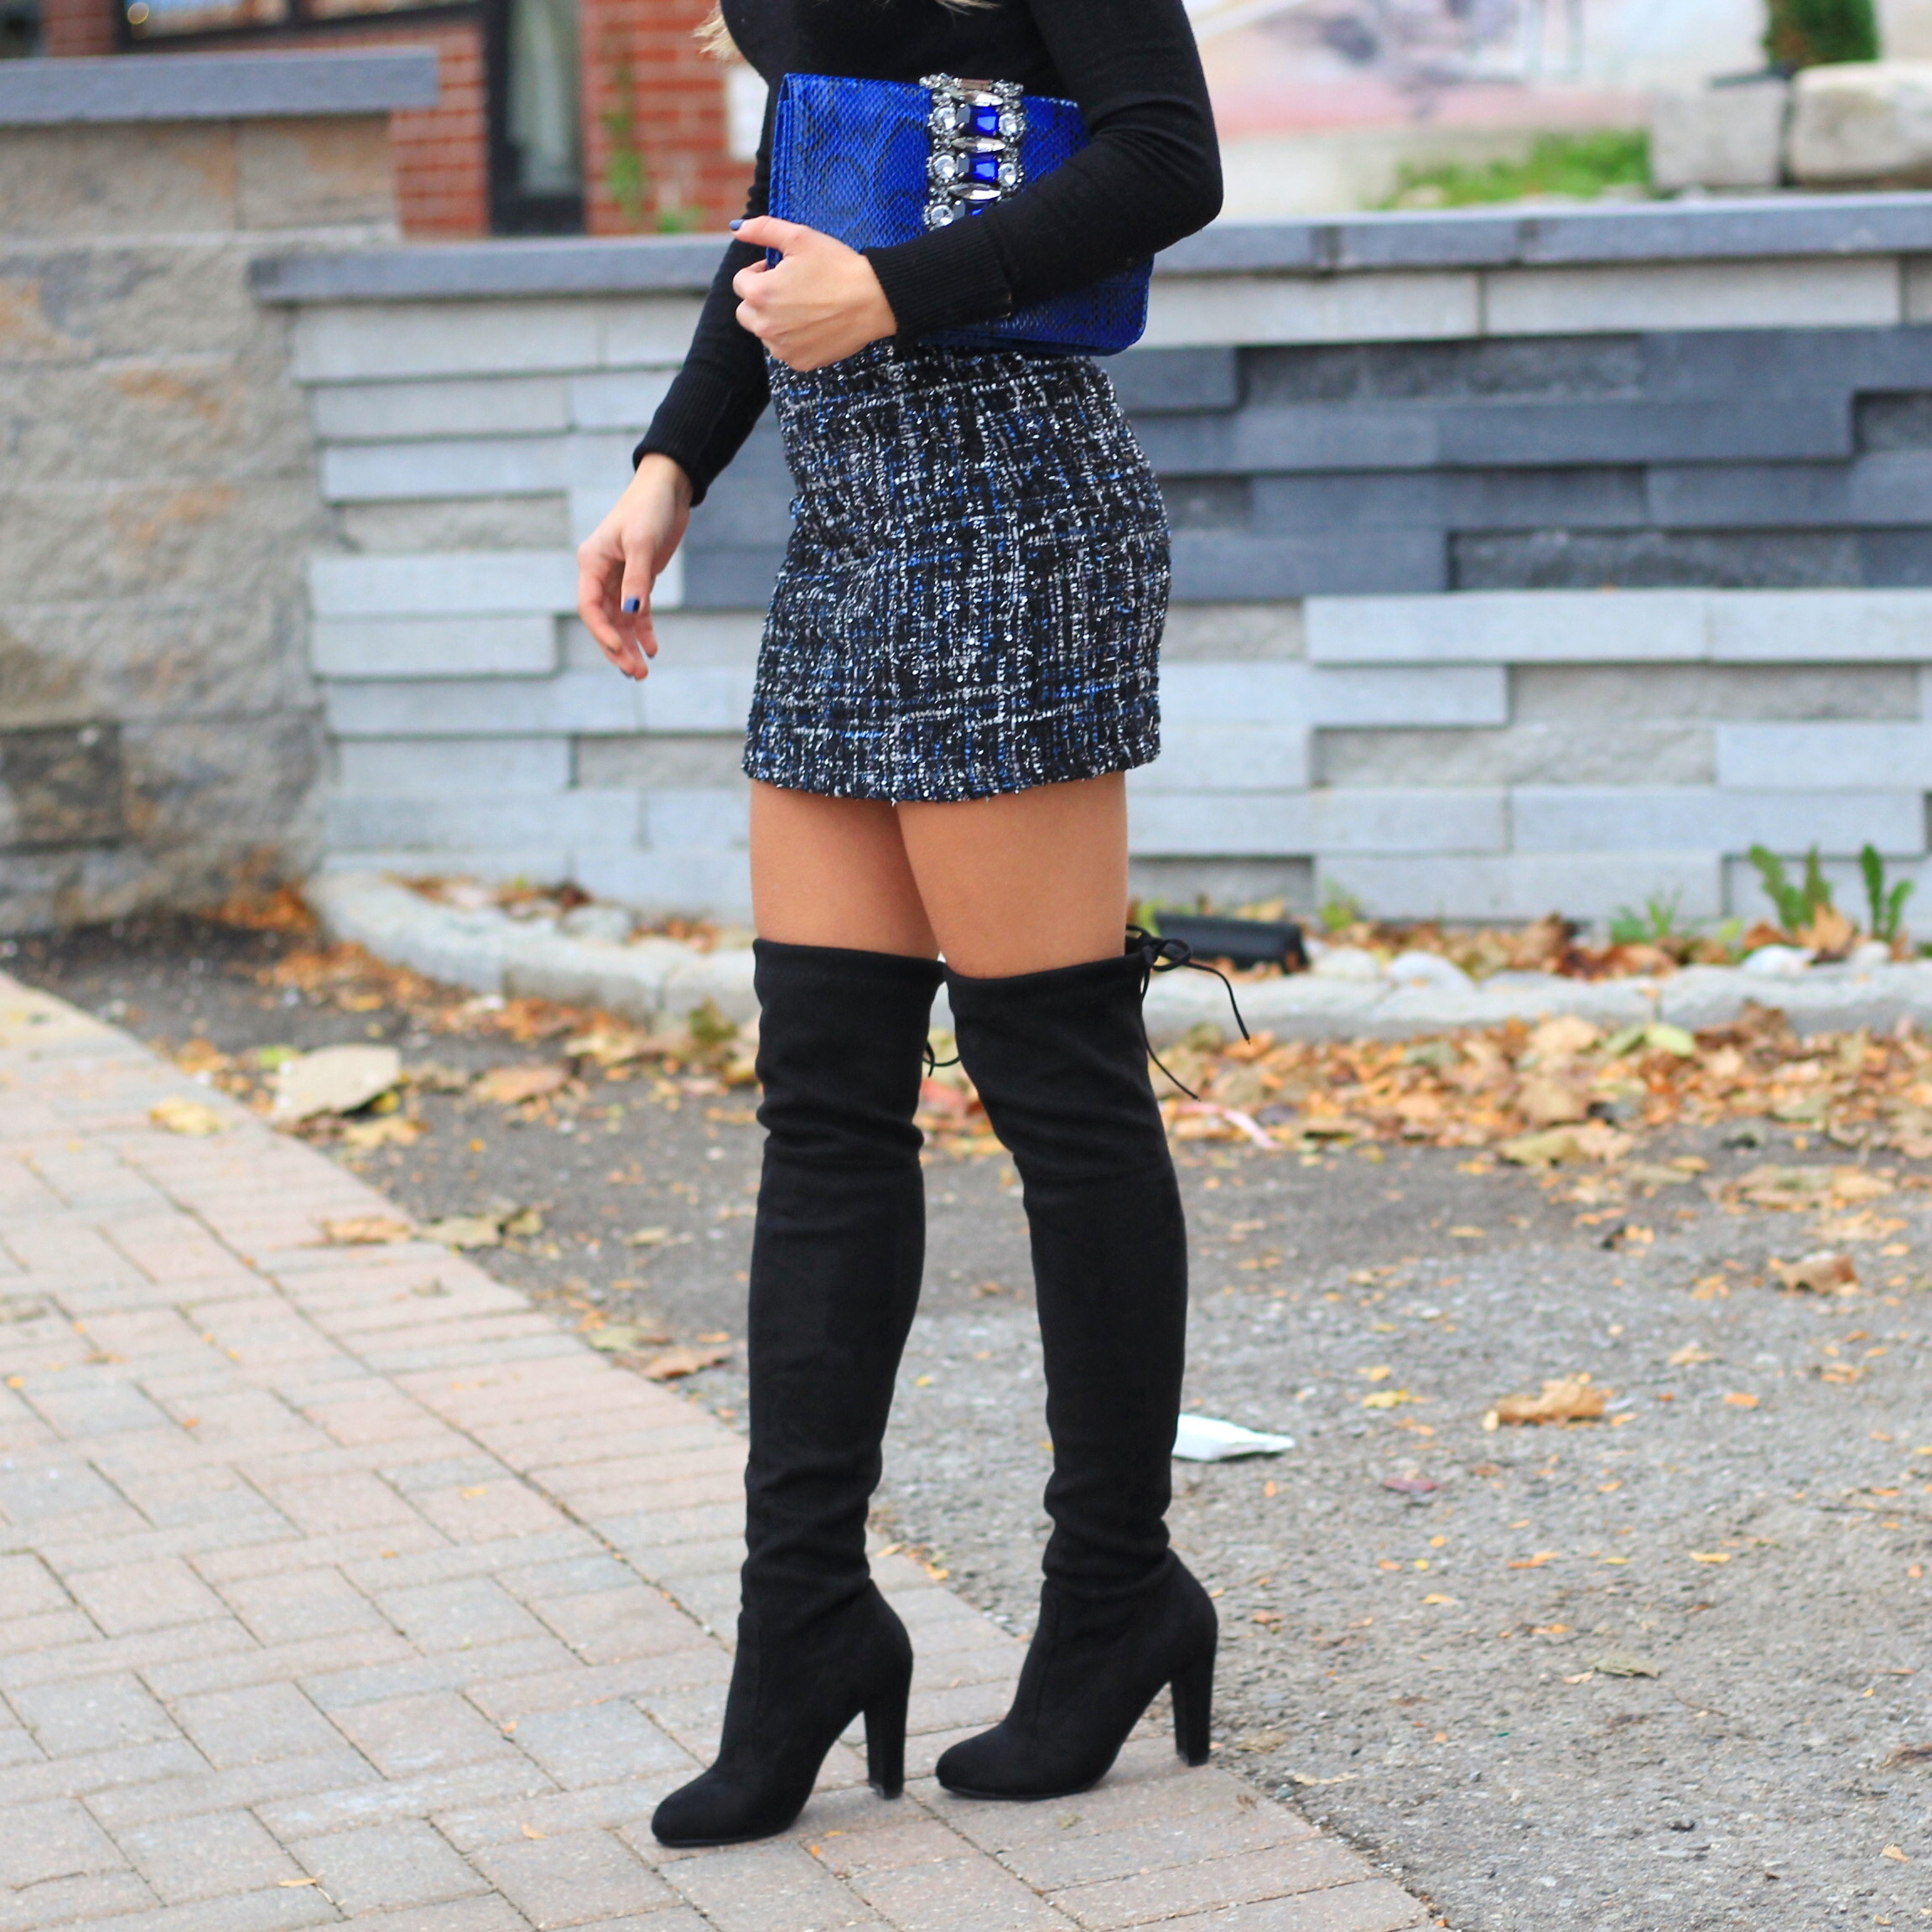 Skirt and Over The Knee Boots , Style Not Brand